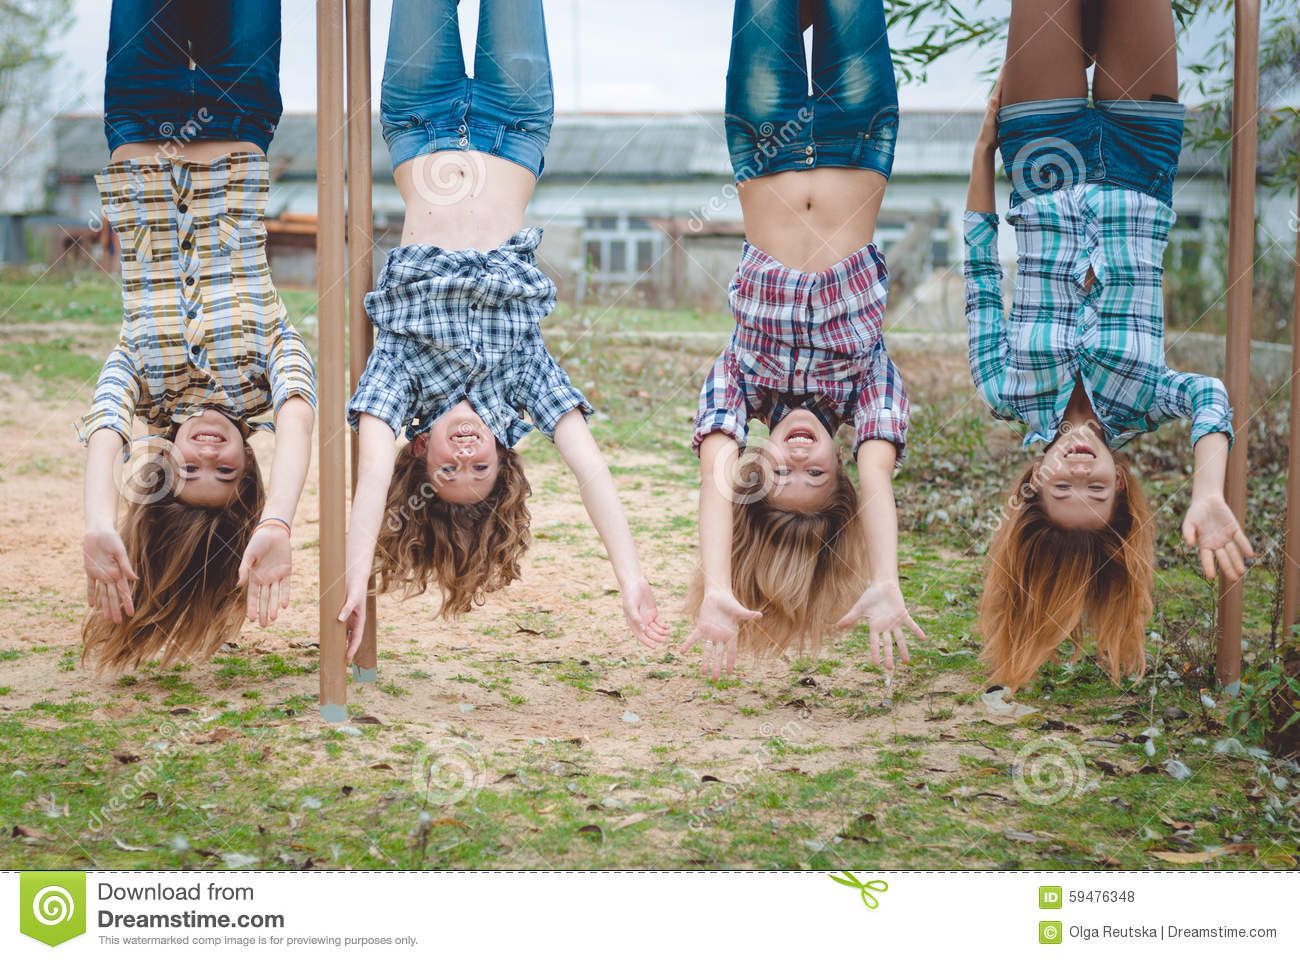 Nude teen girls upside down